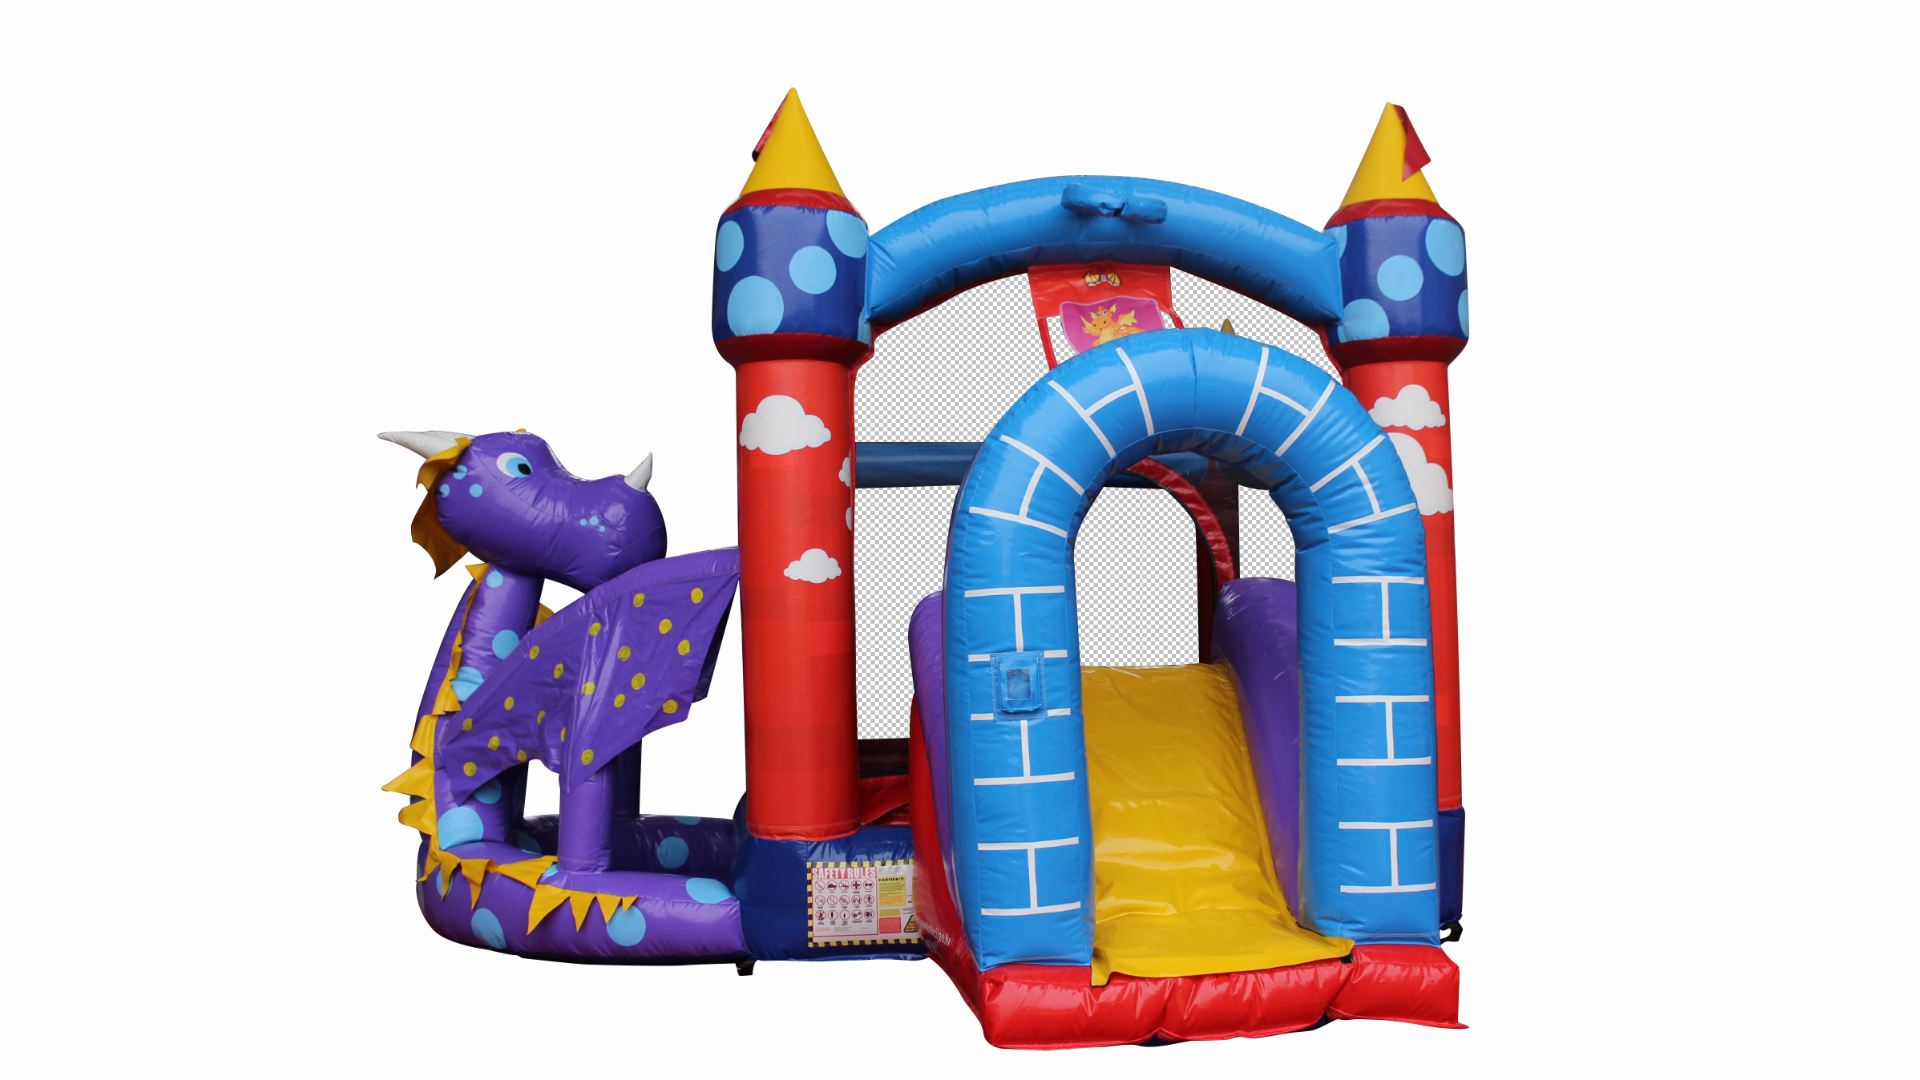 Sky Dragon Jumping Castle